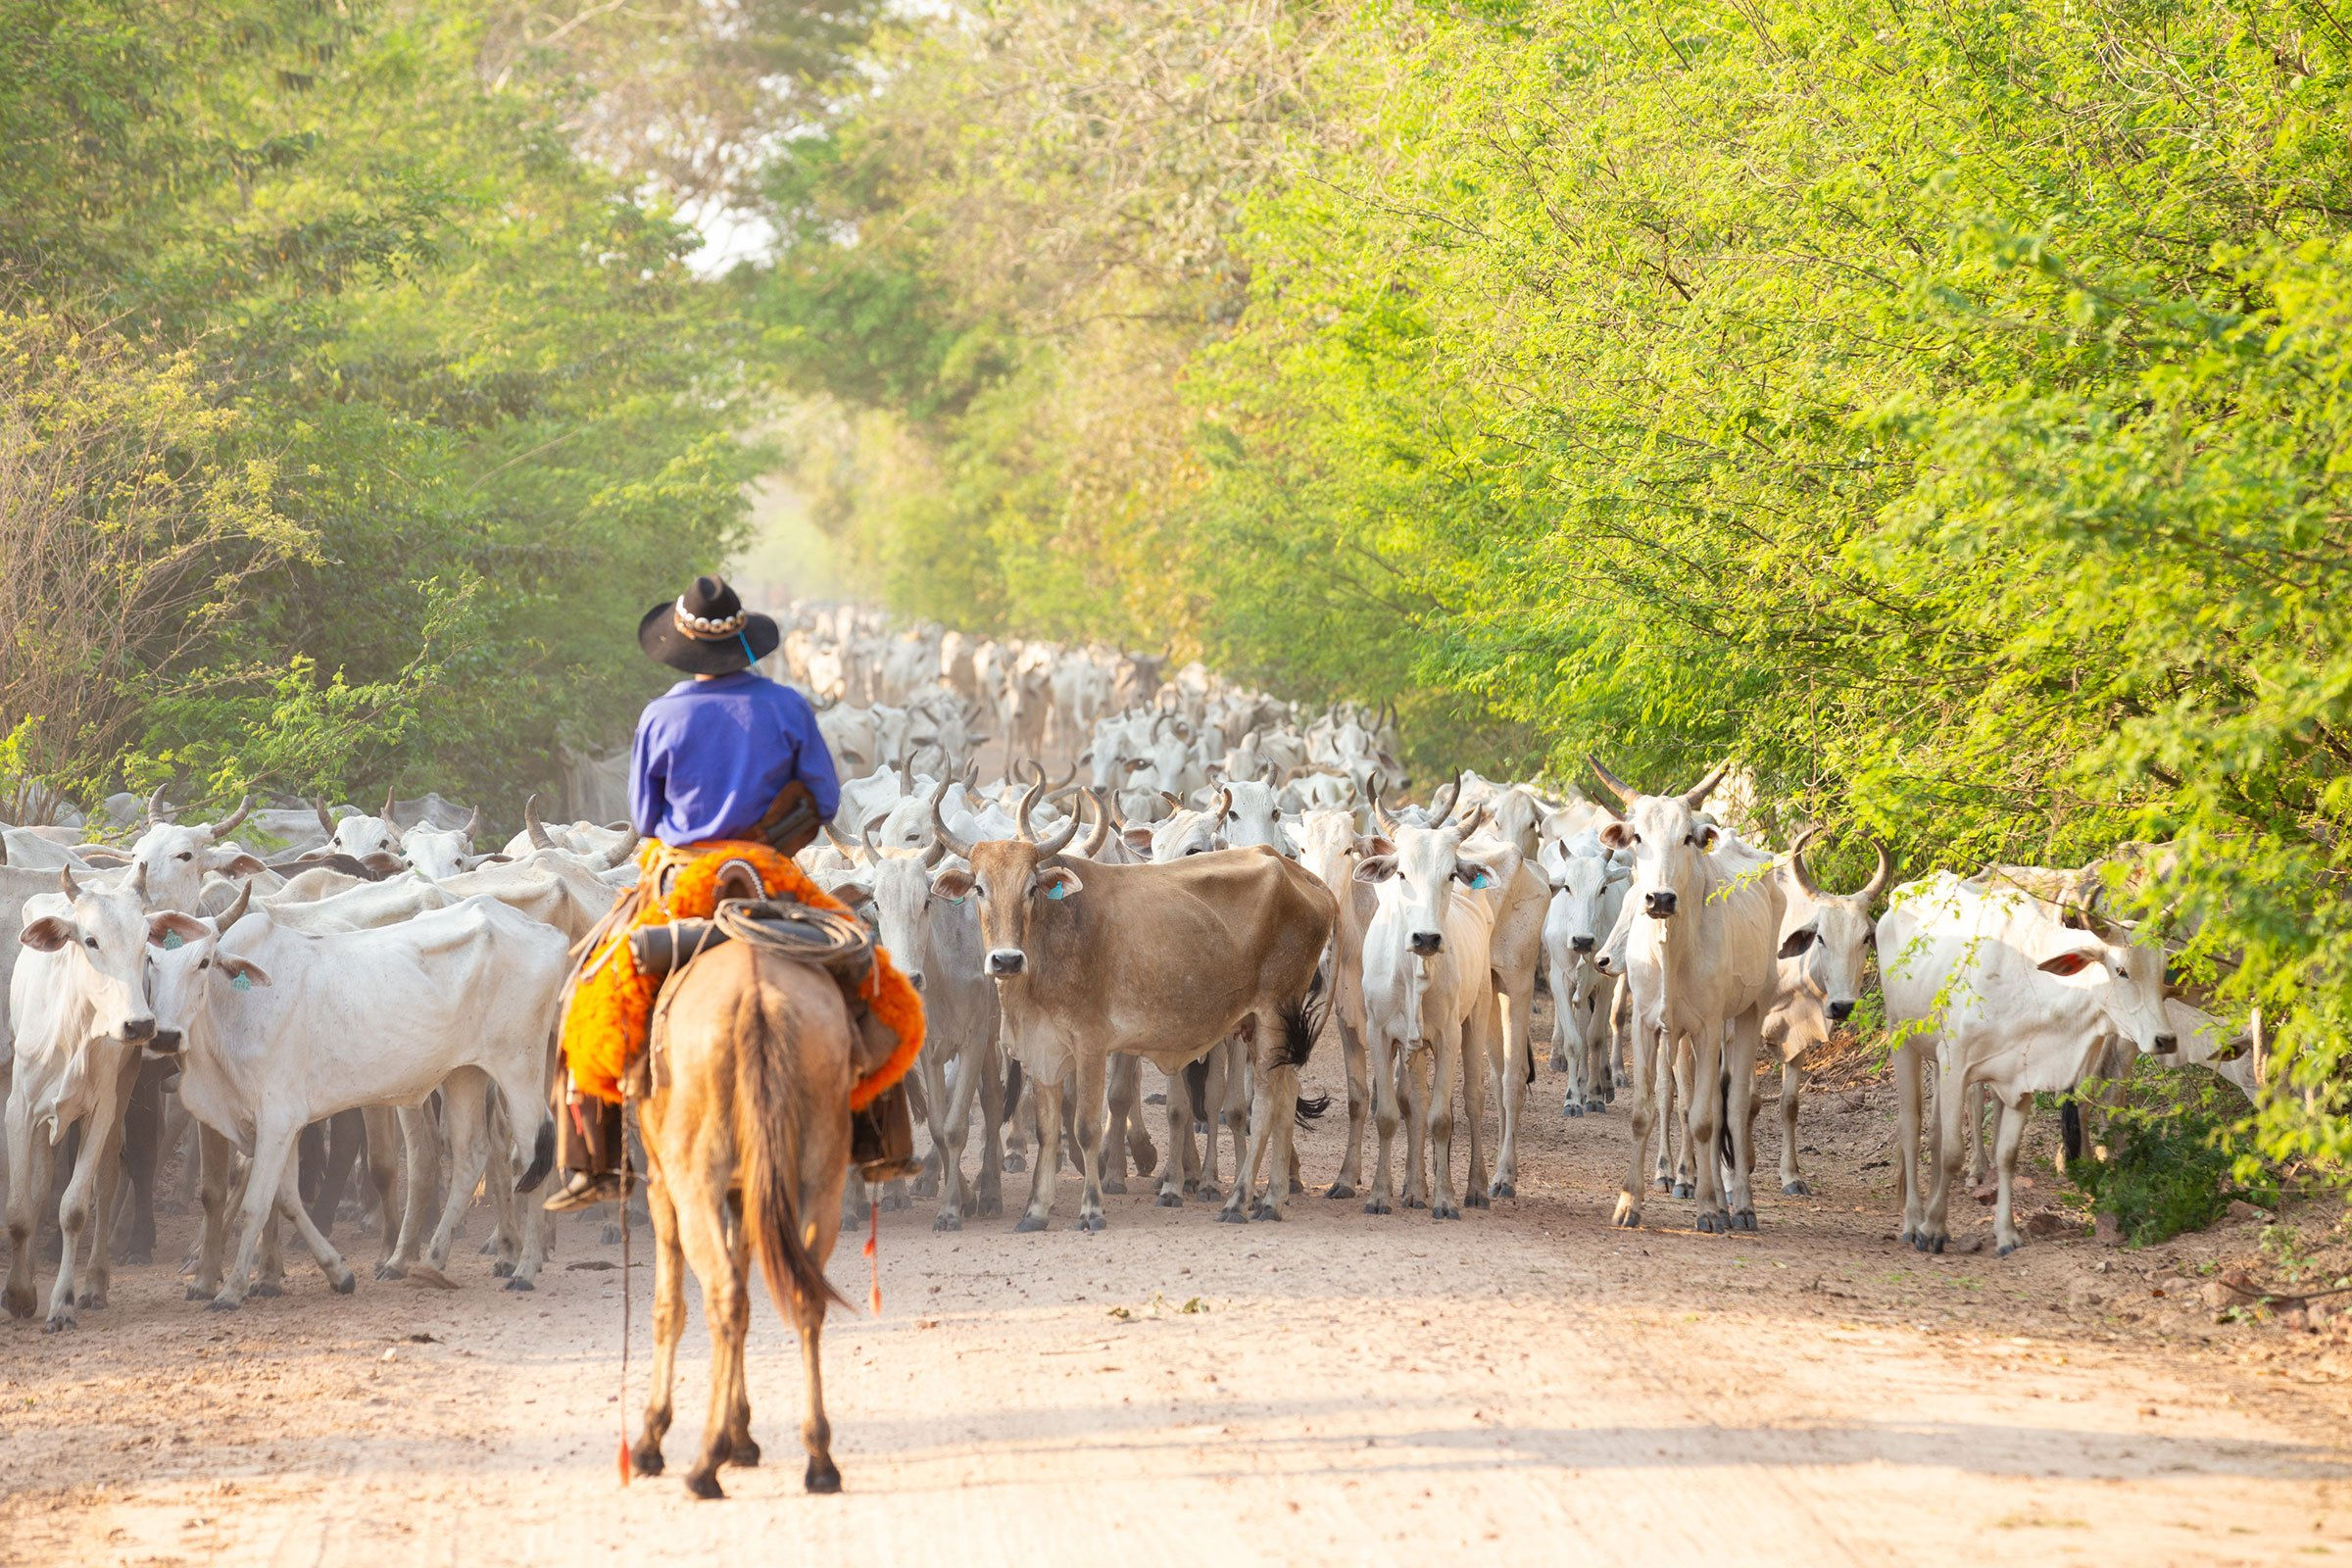 a herd o cattle driven by a Gaucho